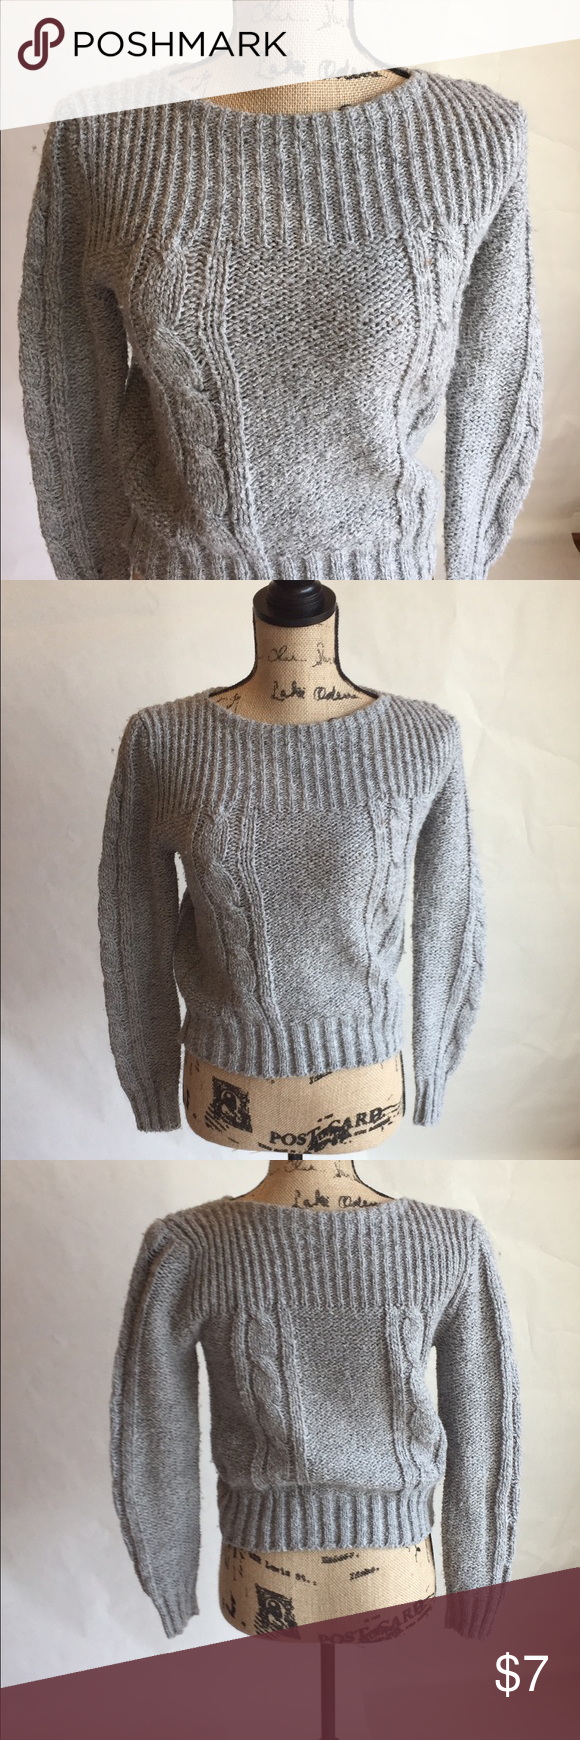 Boatneck vintage crop knit grey cozy sweater Great condition grey chunky knit vintage sweater Vintage Sweaters